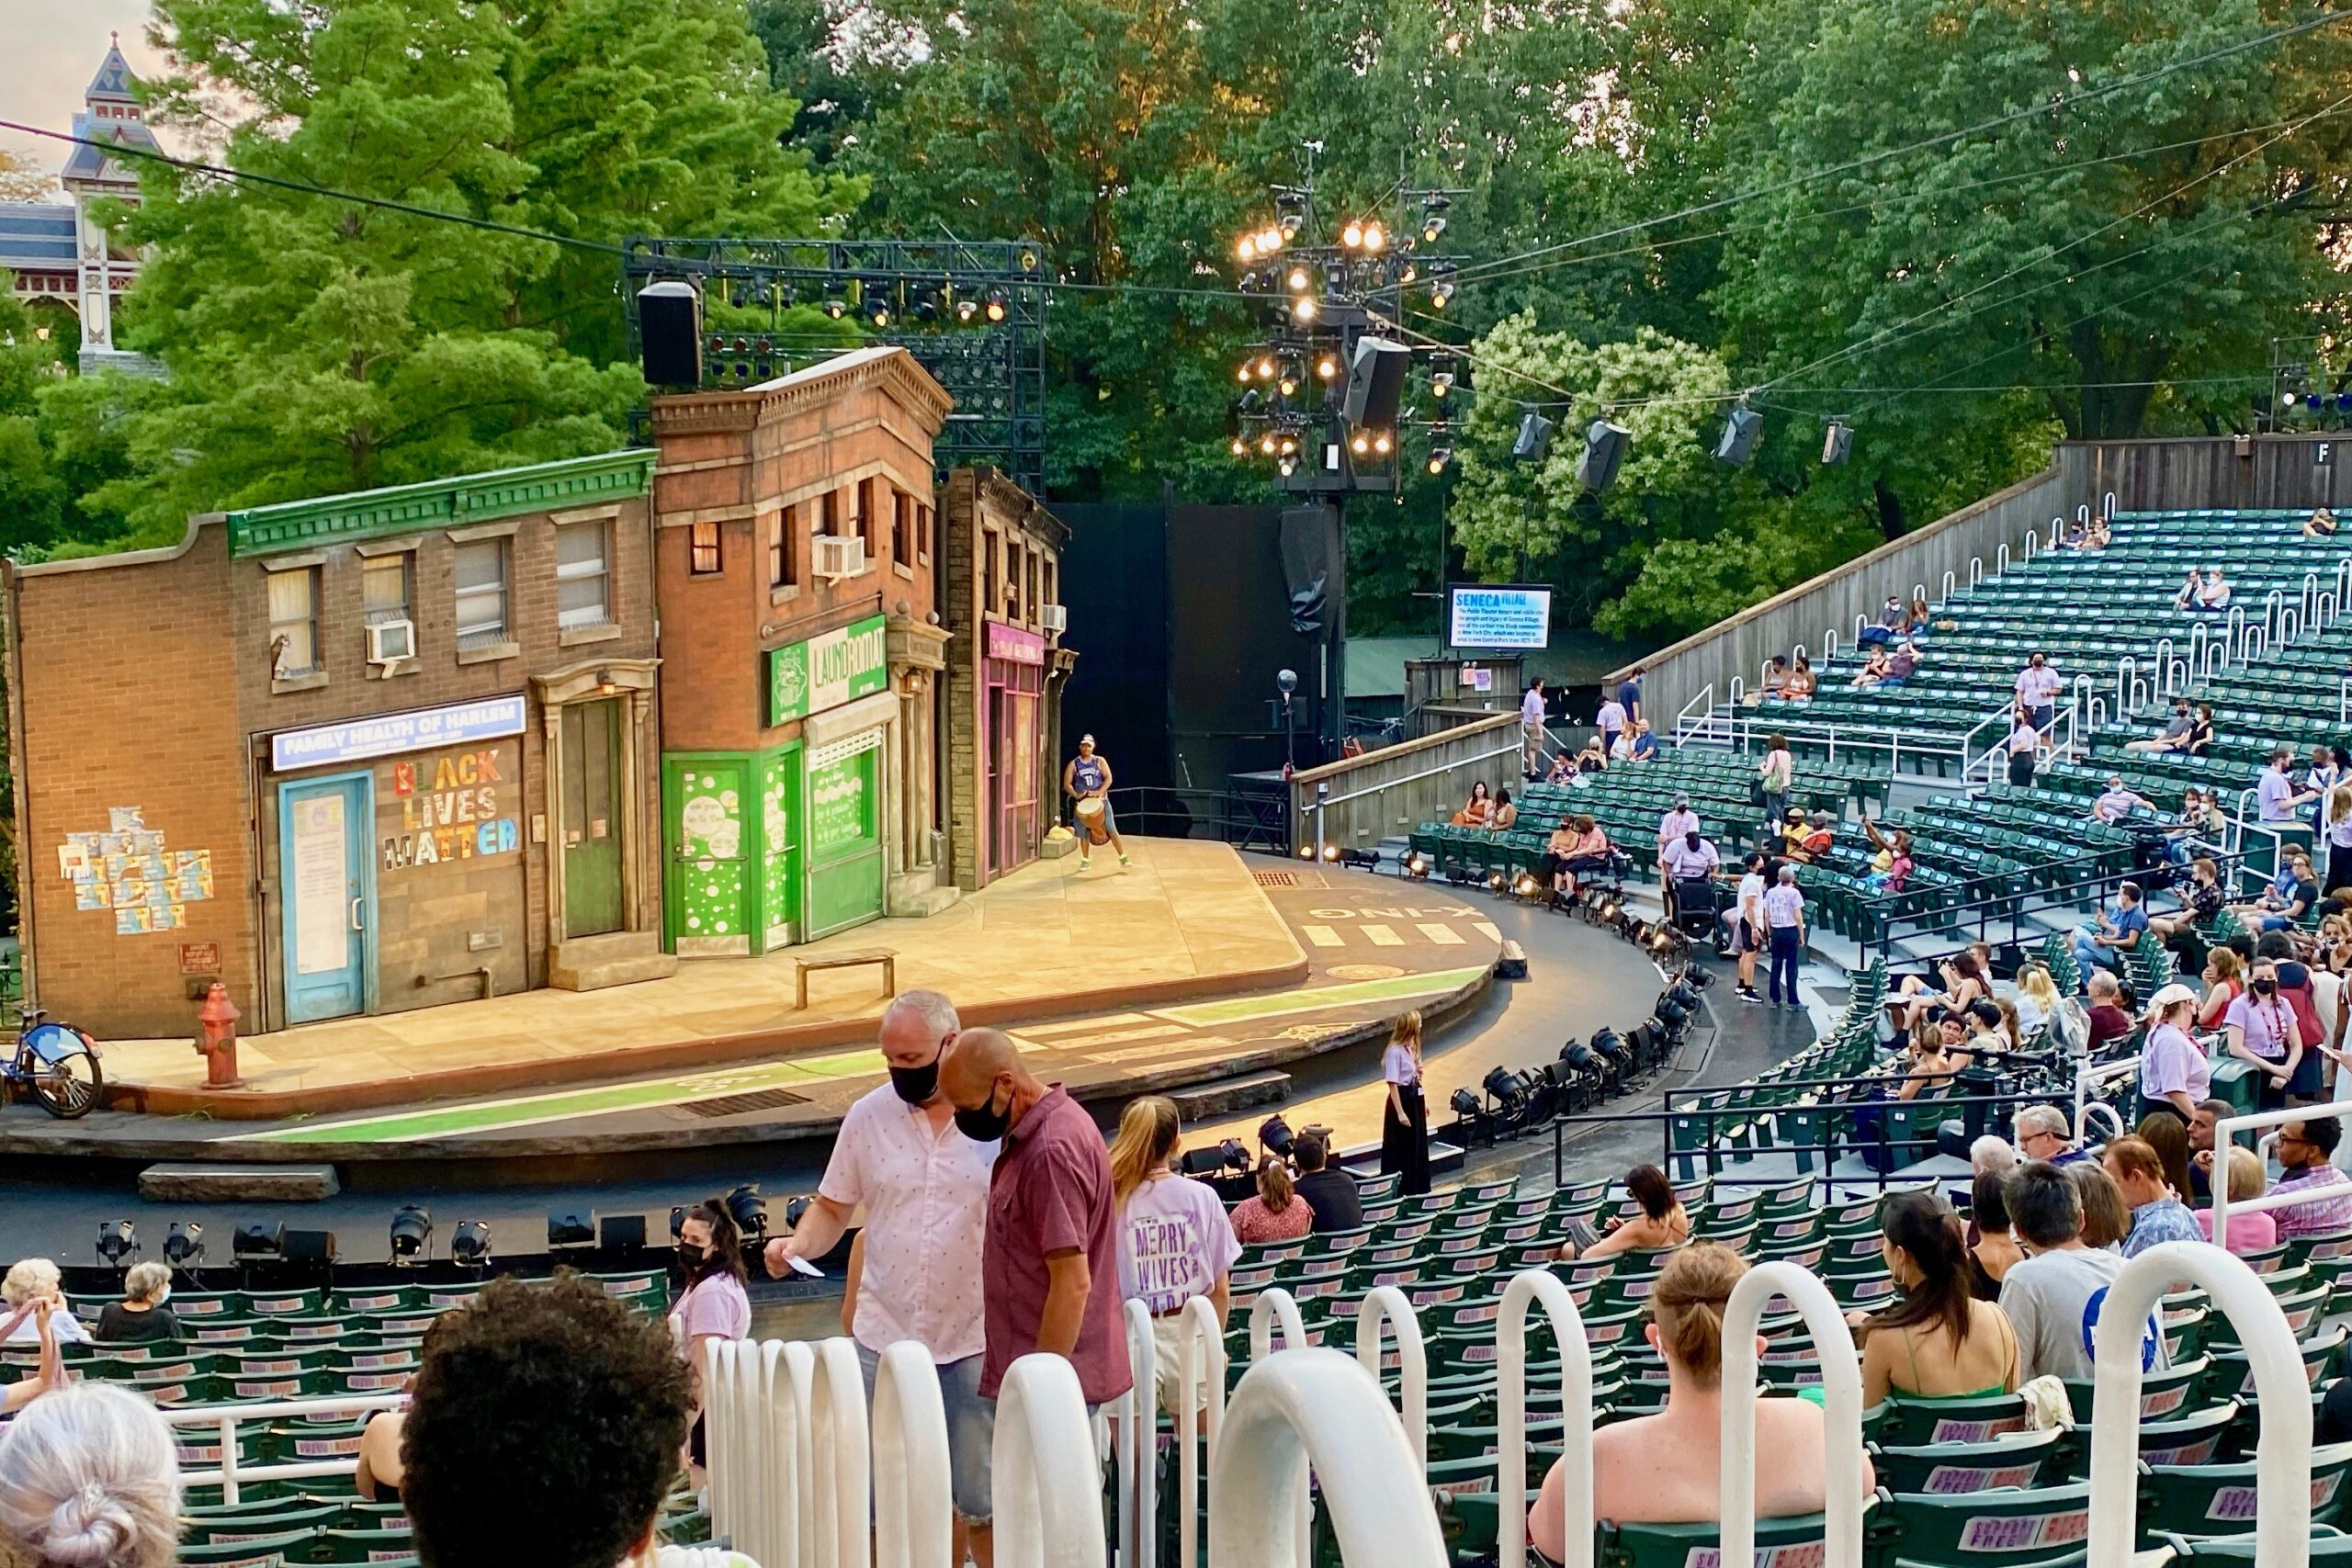 masked people looking for seats in Central Park's Delacorte Theater